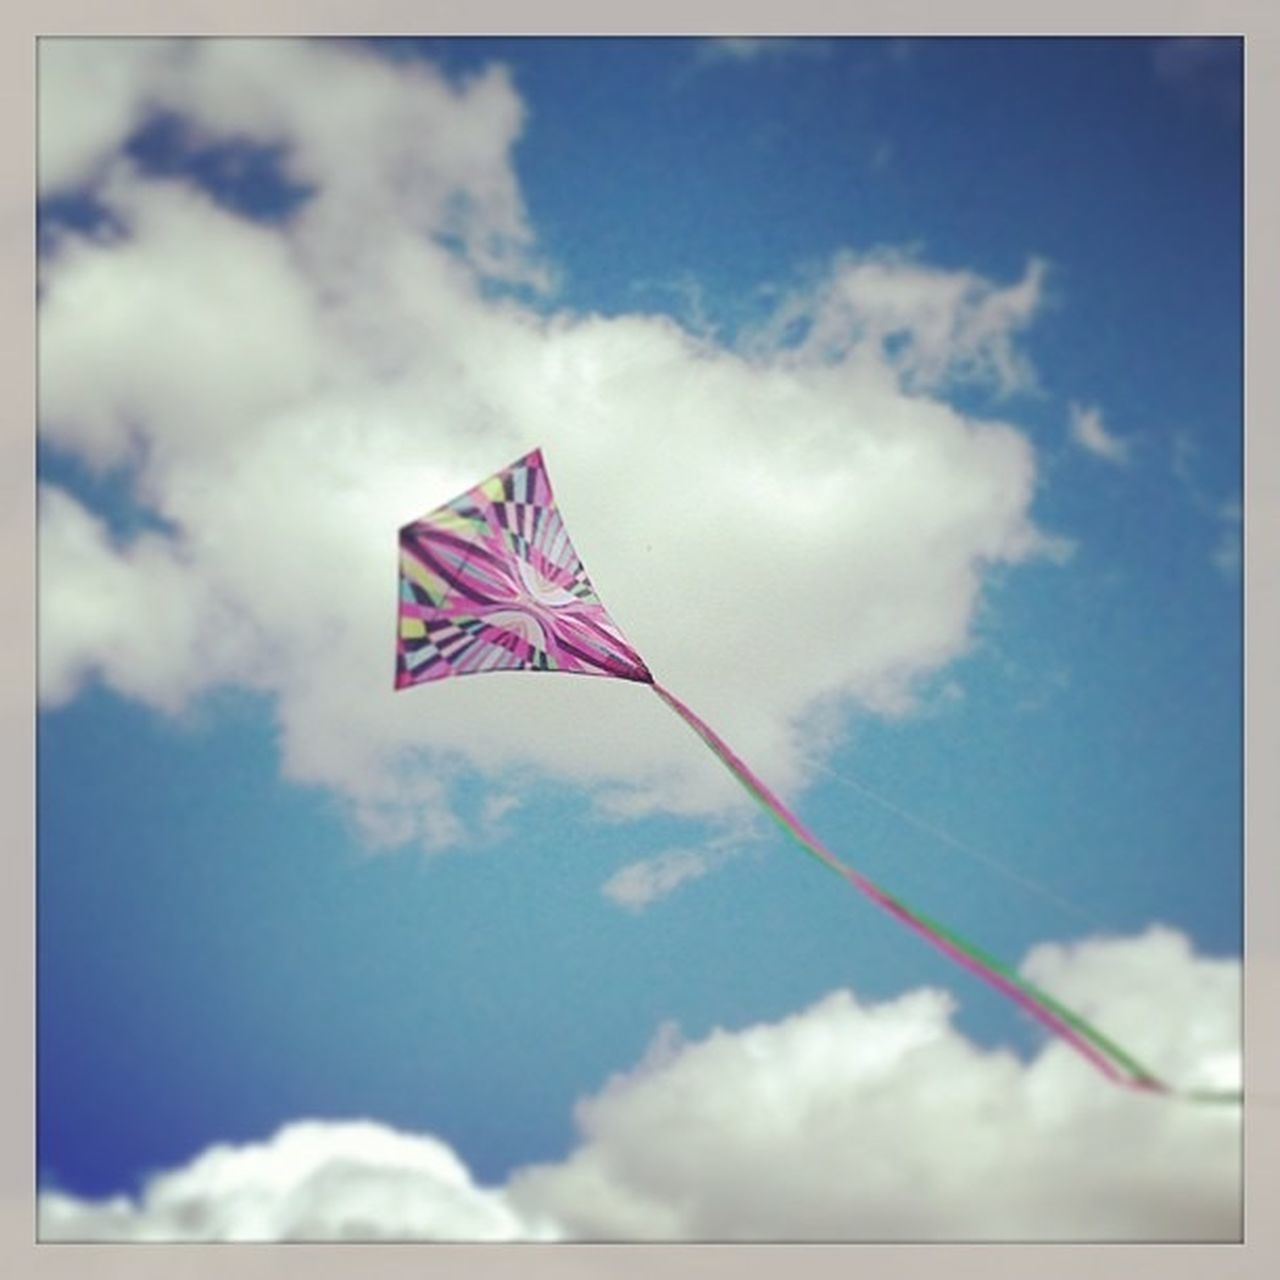 cloud - sky, cloud, sky, low angle view, day, outdoors, flag, no people, blue, nature, close-up